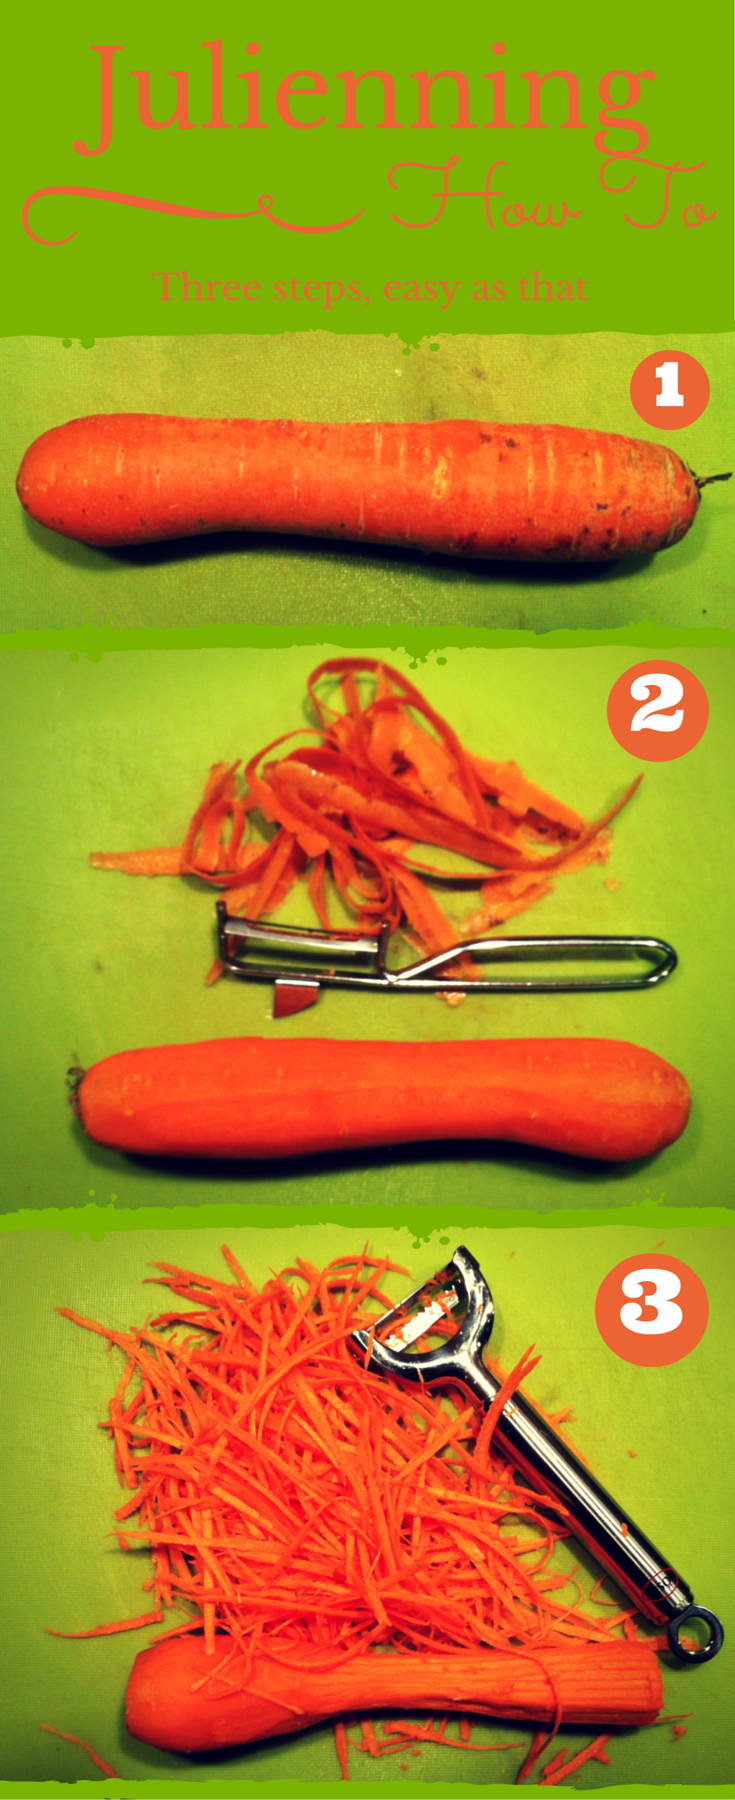 Infographic - The art of Julienning - how to make julienne